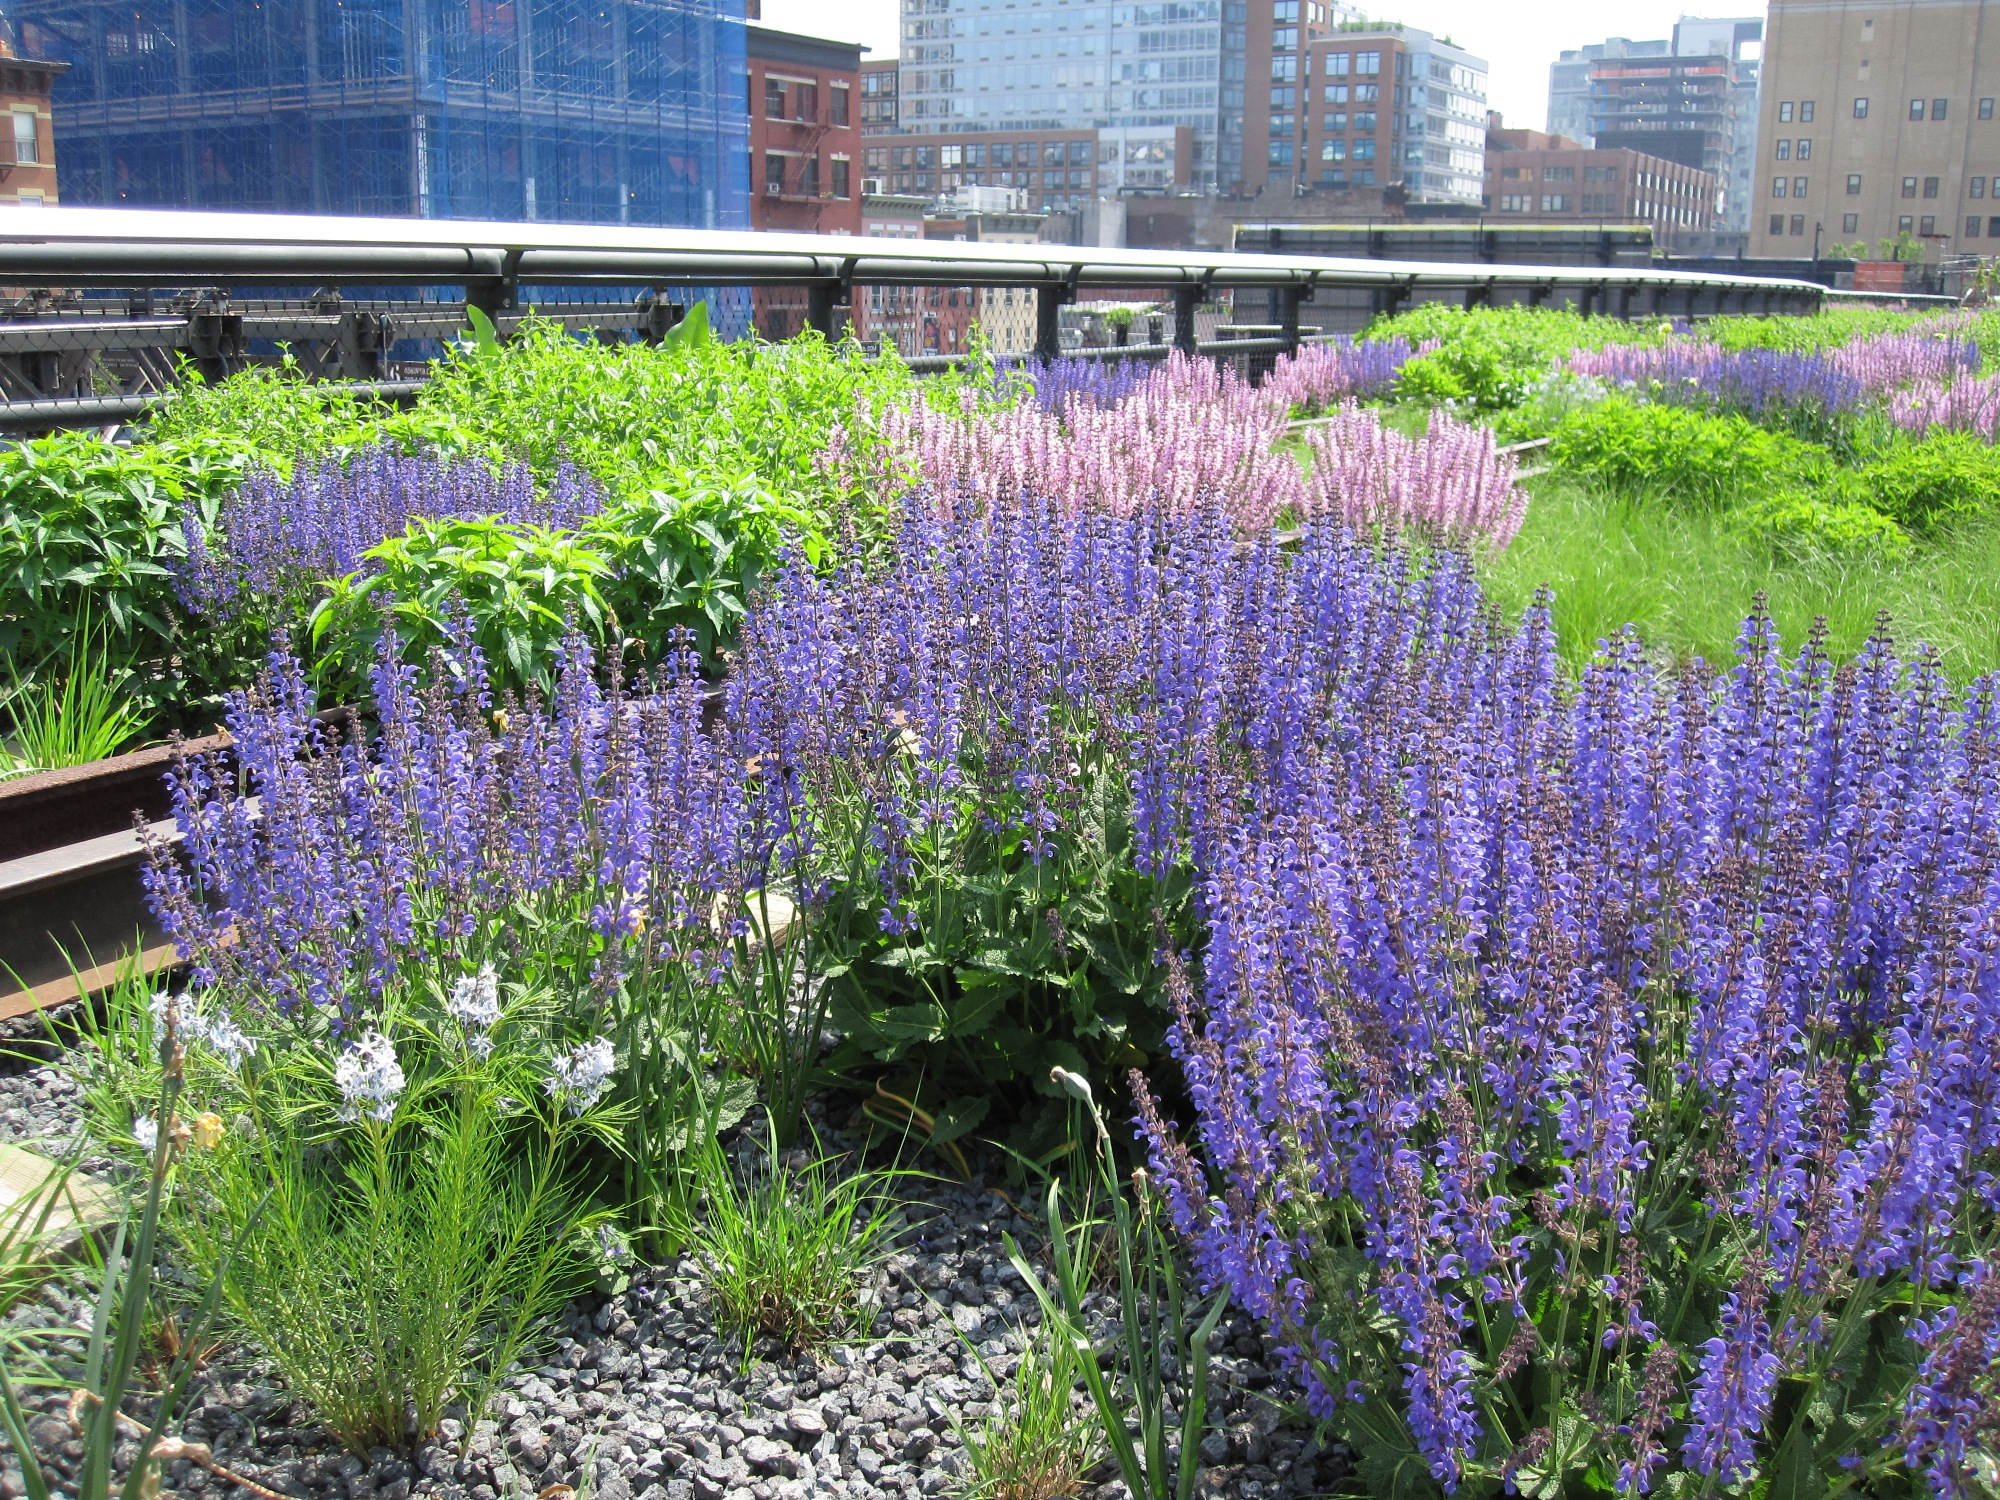 10 Reasons To Love The High Line In Nyc Everett Potter S Travel Report